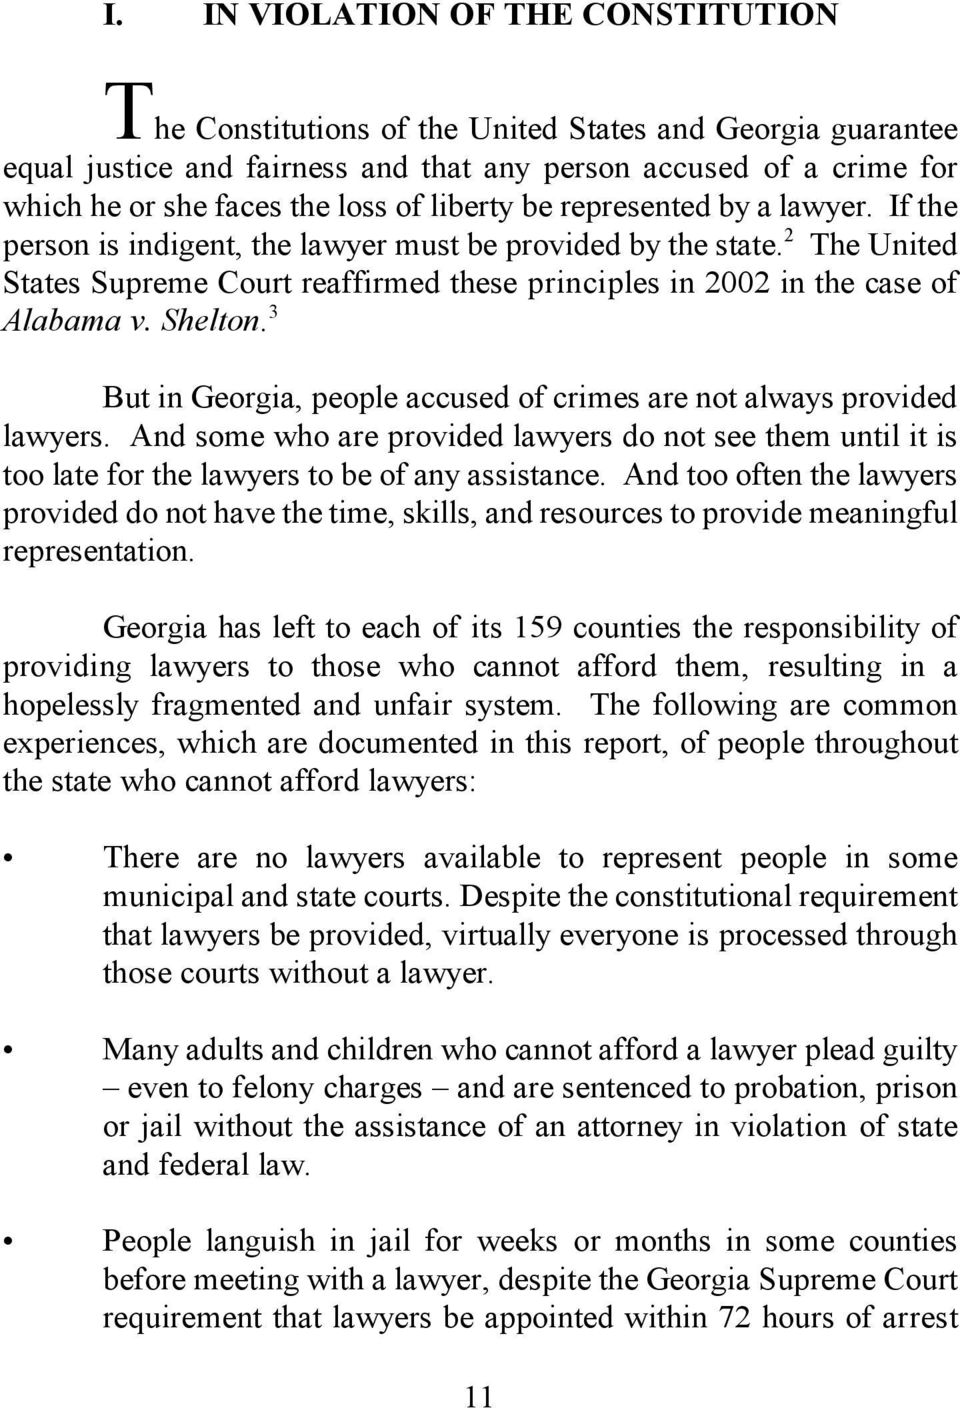 2 The United States Supreme Court reaffirmed these principles in 2002 in the case of Alabama v. Shelton. 3 But in Georgia, people accused of crimes are not always provided lawyers.